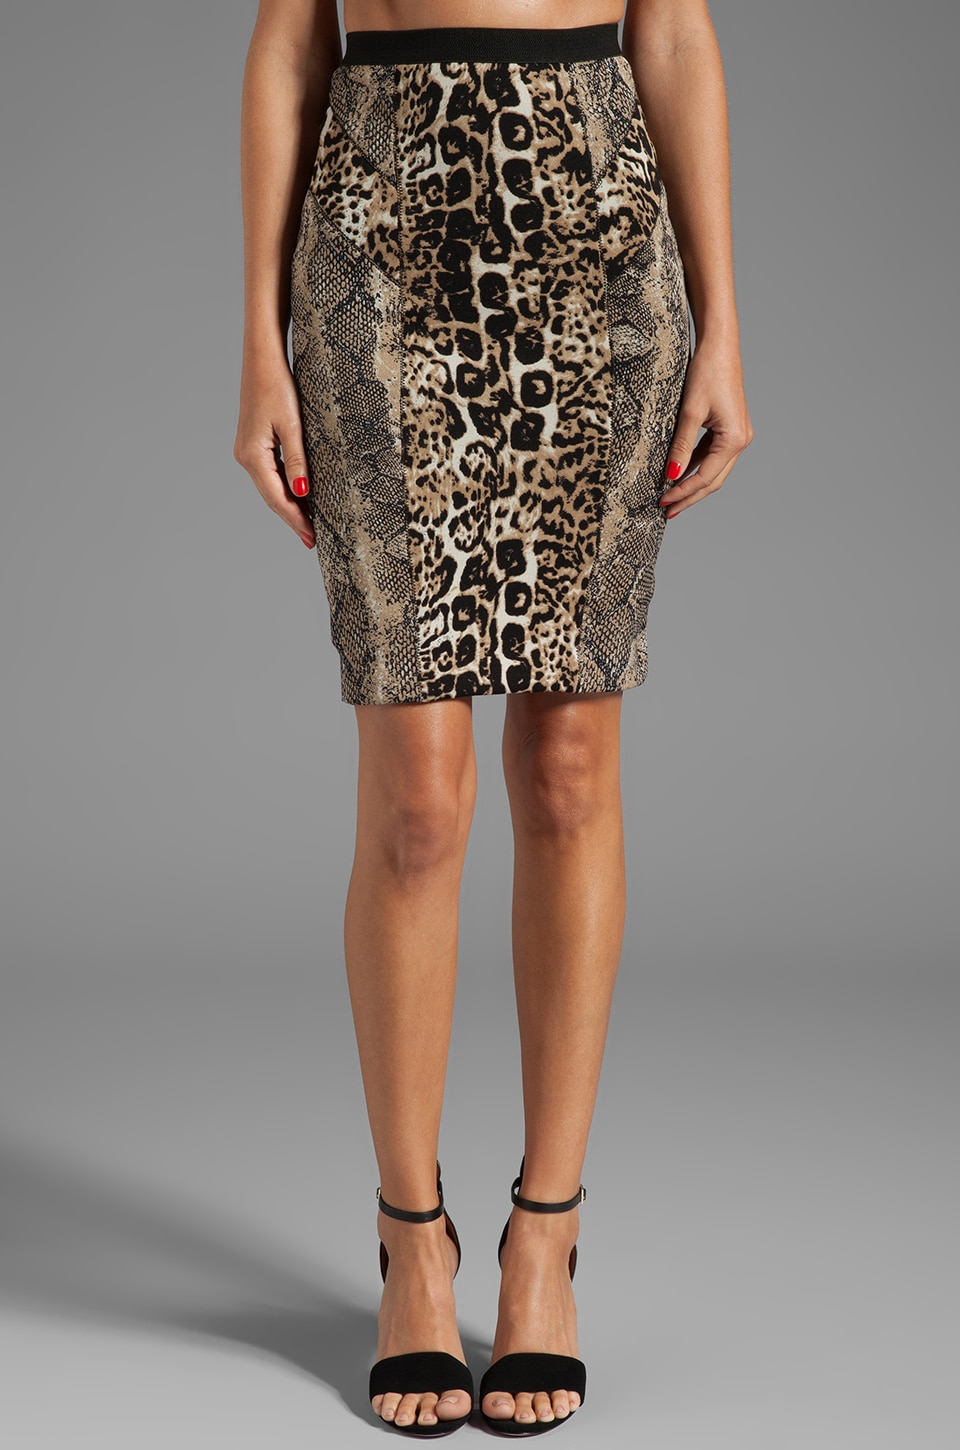 Tracy Reese Printed Neoprene Combo Skirt in Python/Cheetah